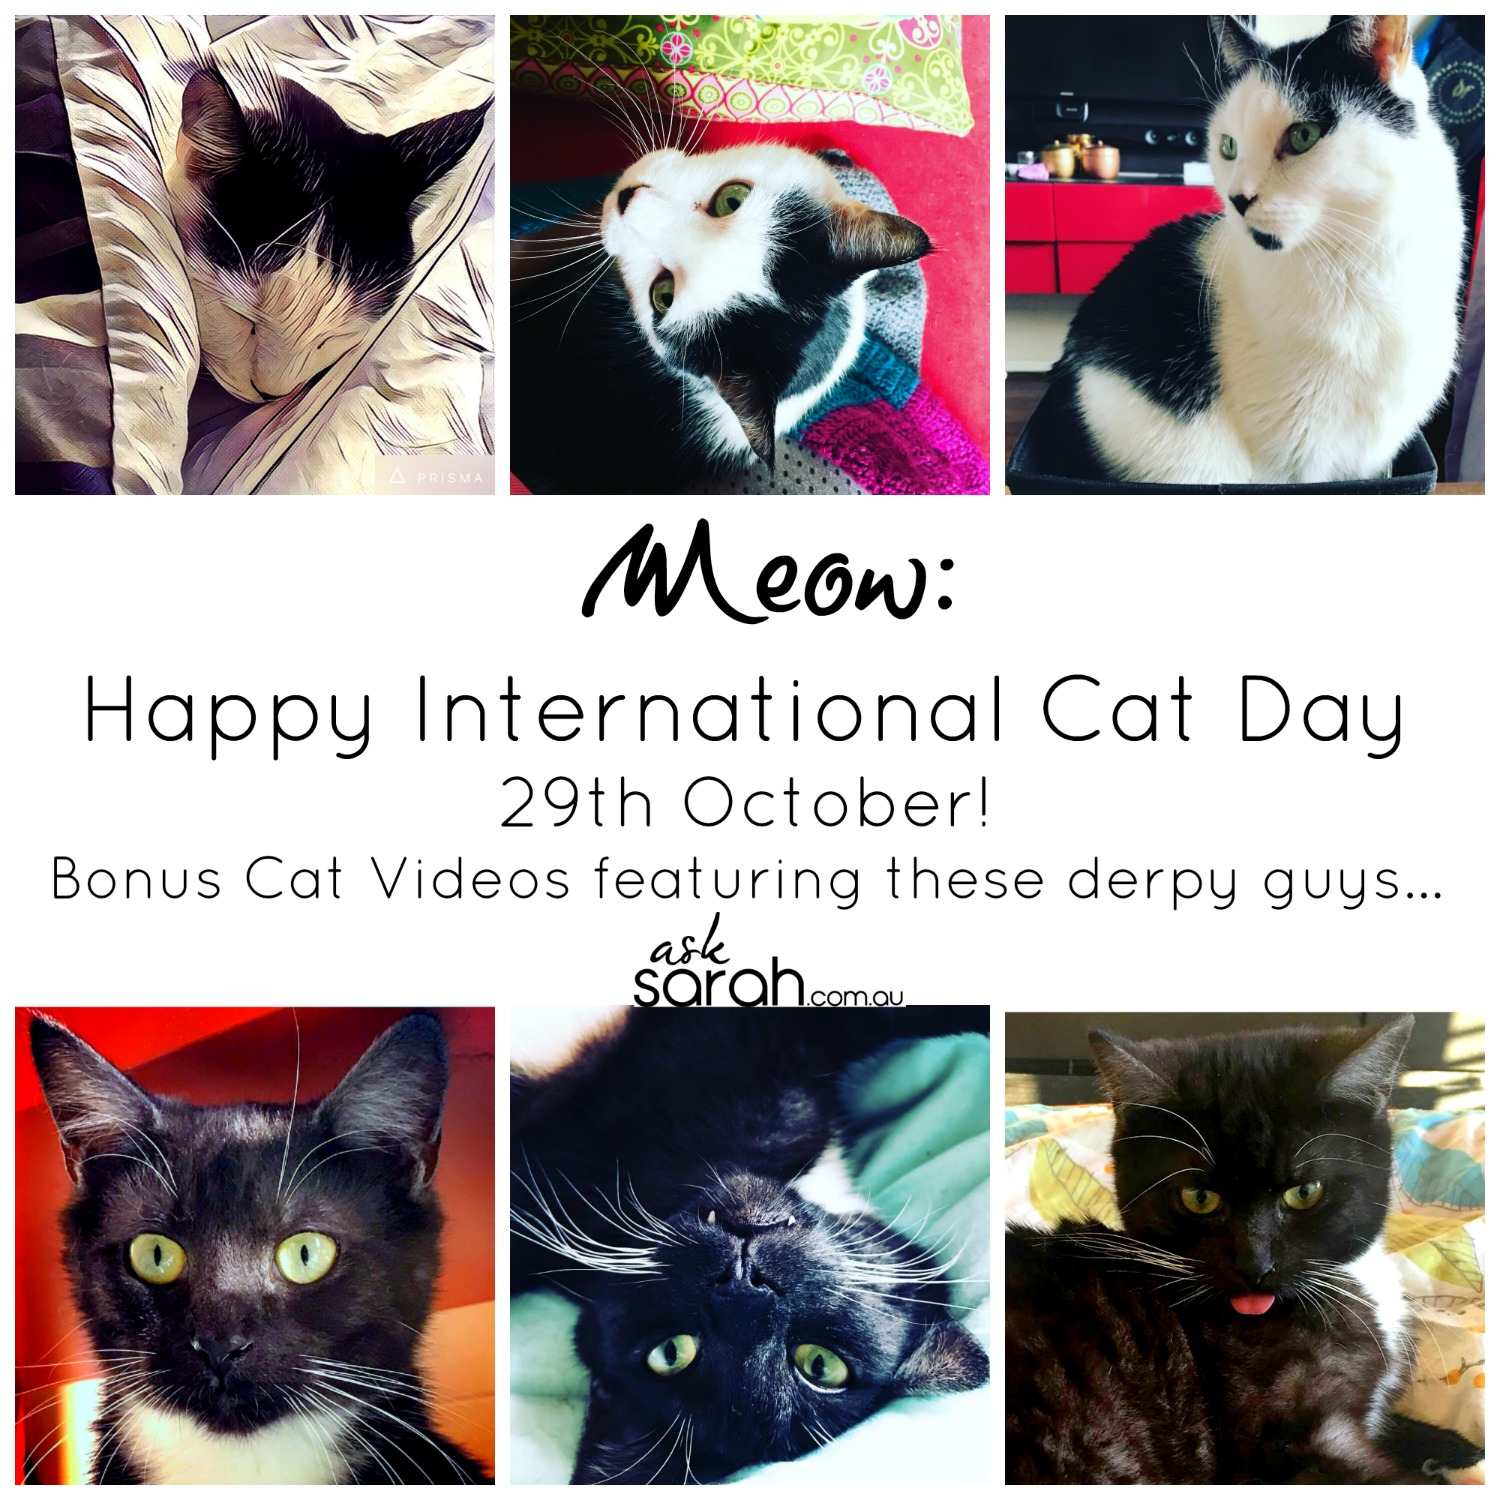 Happy International Cat Day 29th October! Bonus Cat Videos...